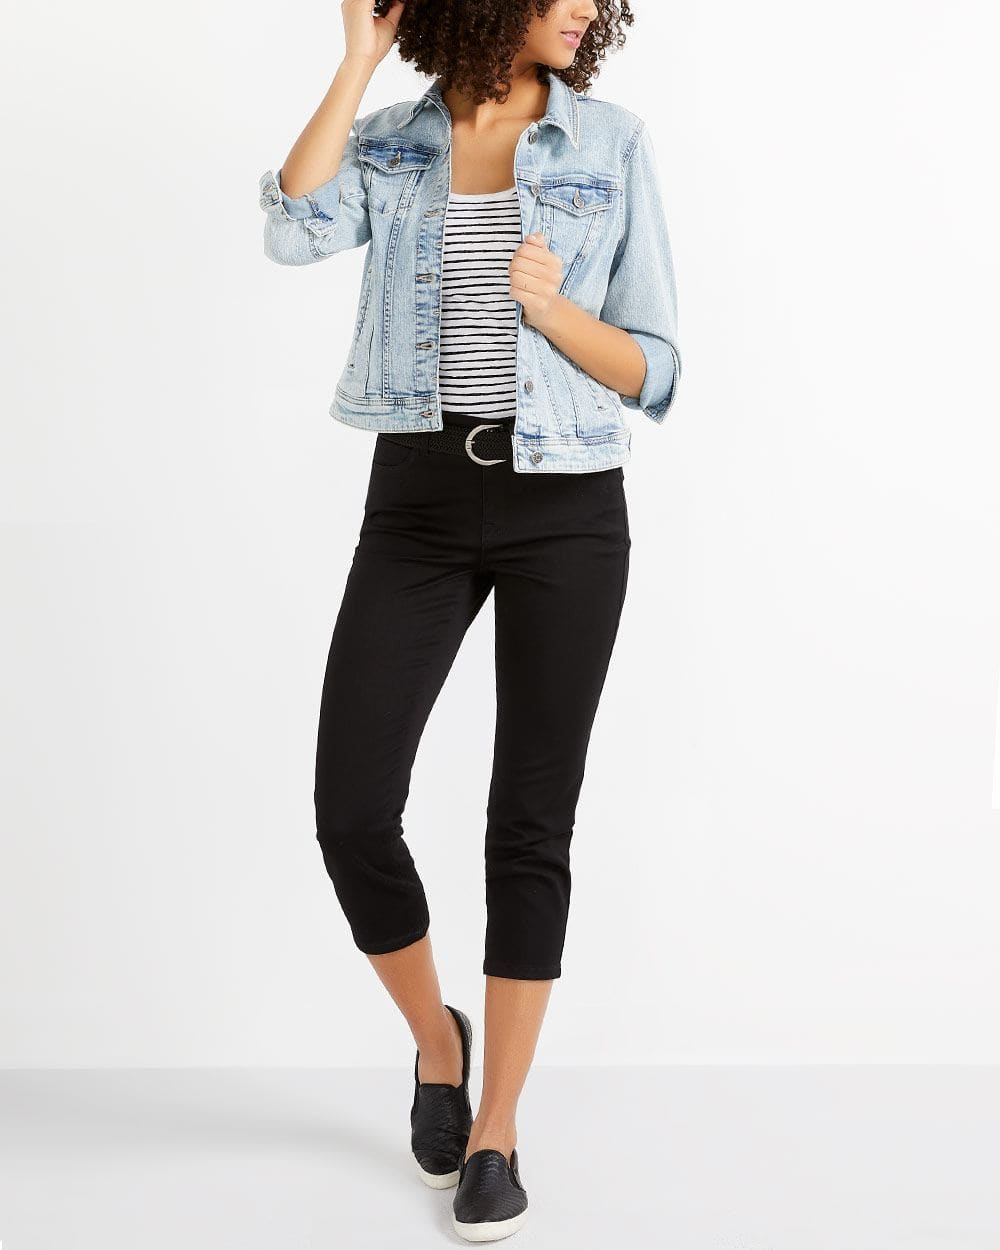 The Signature Soft Cropped Black Jeans